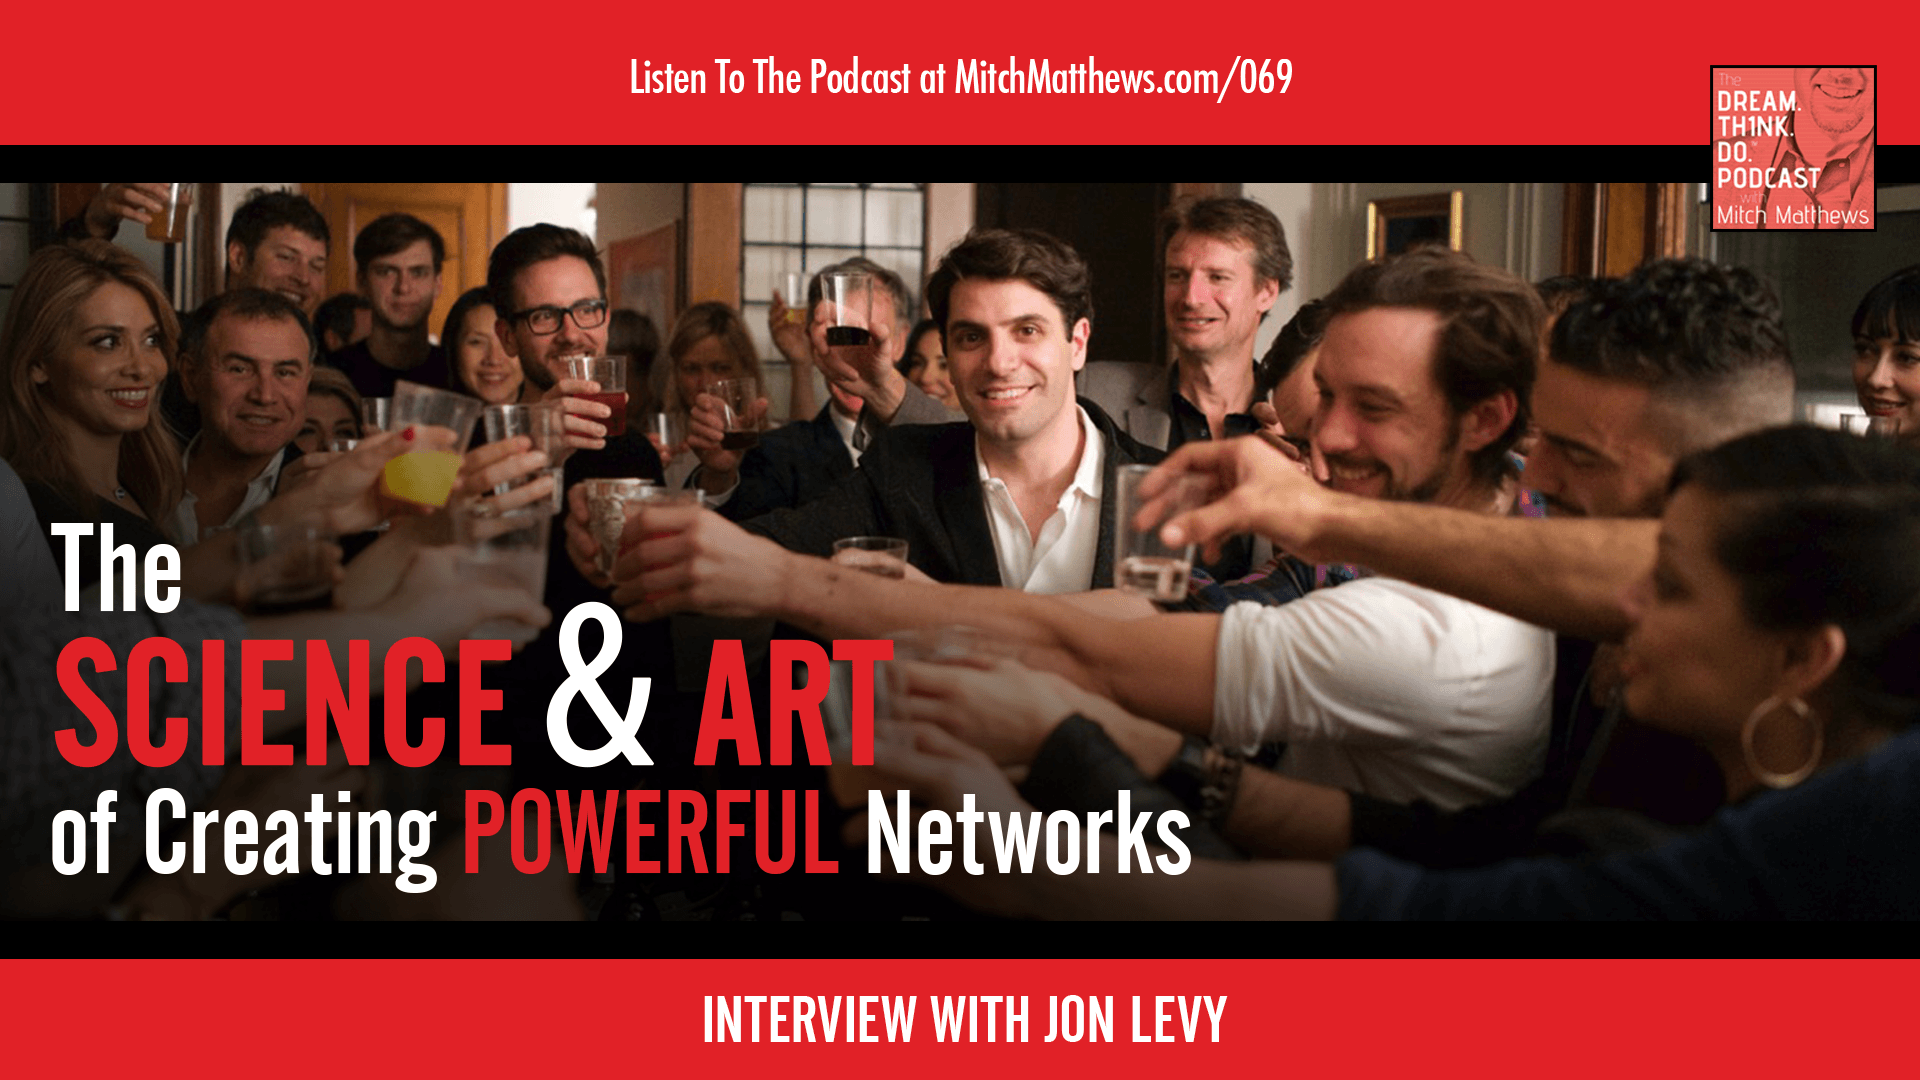 Jon Levy | The Science and Art of Creating Powerful Networks